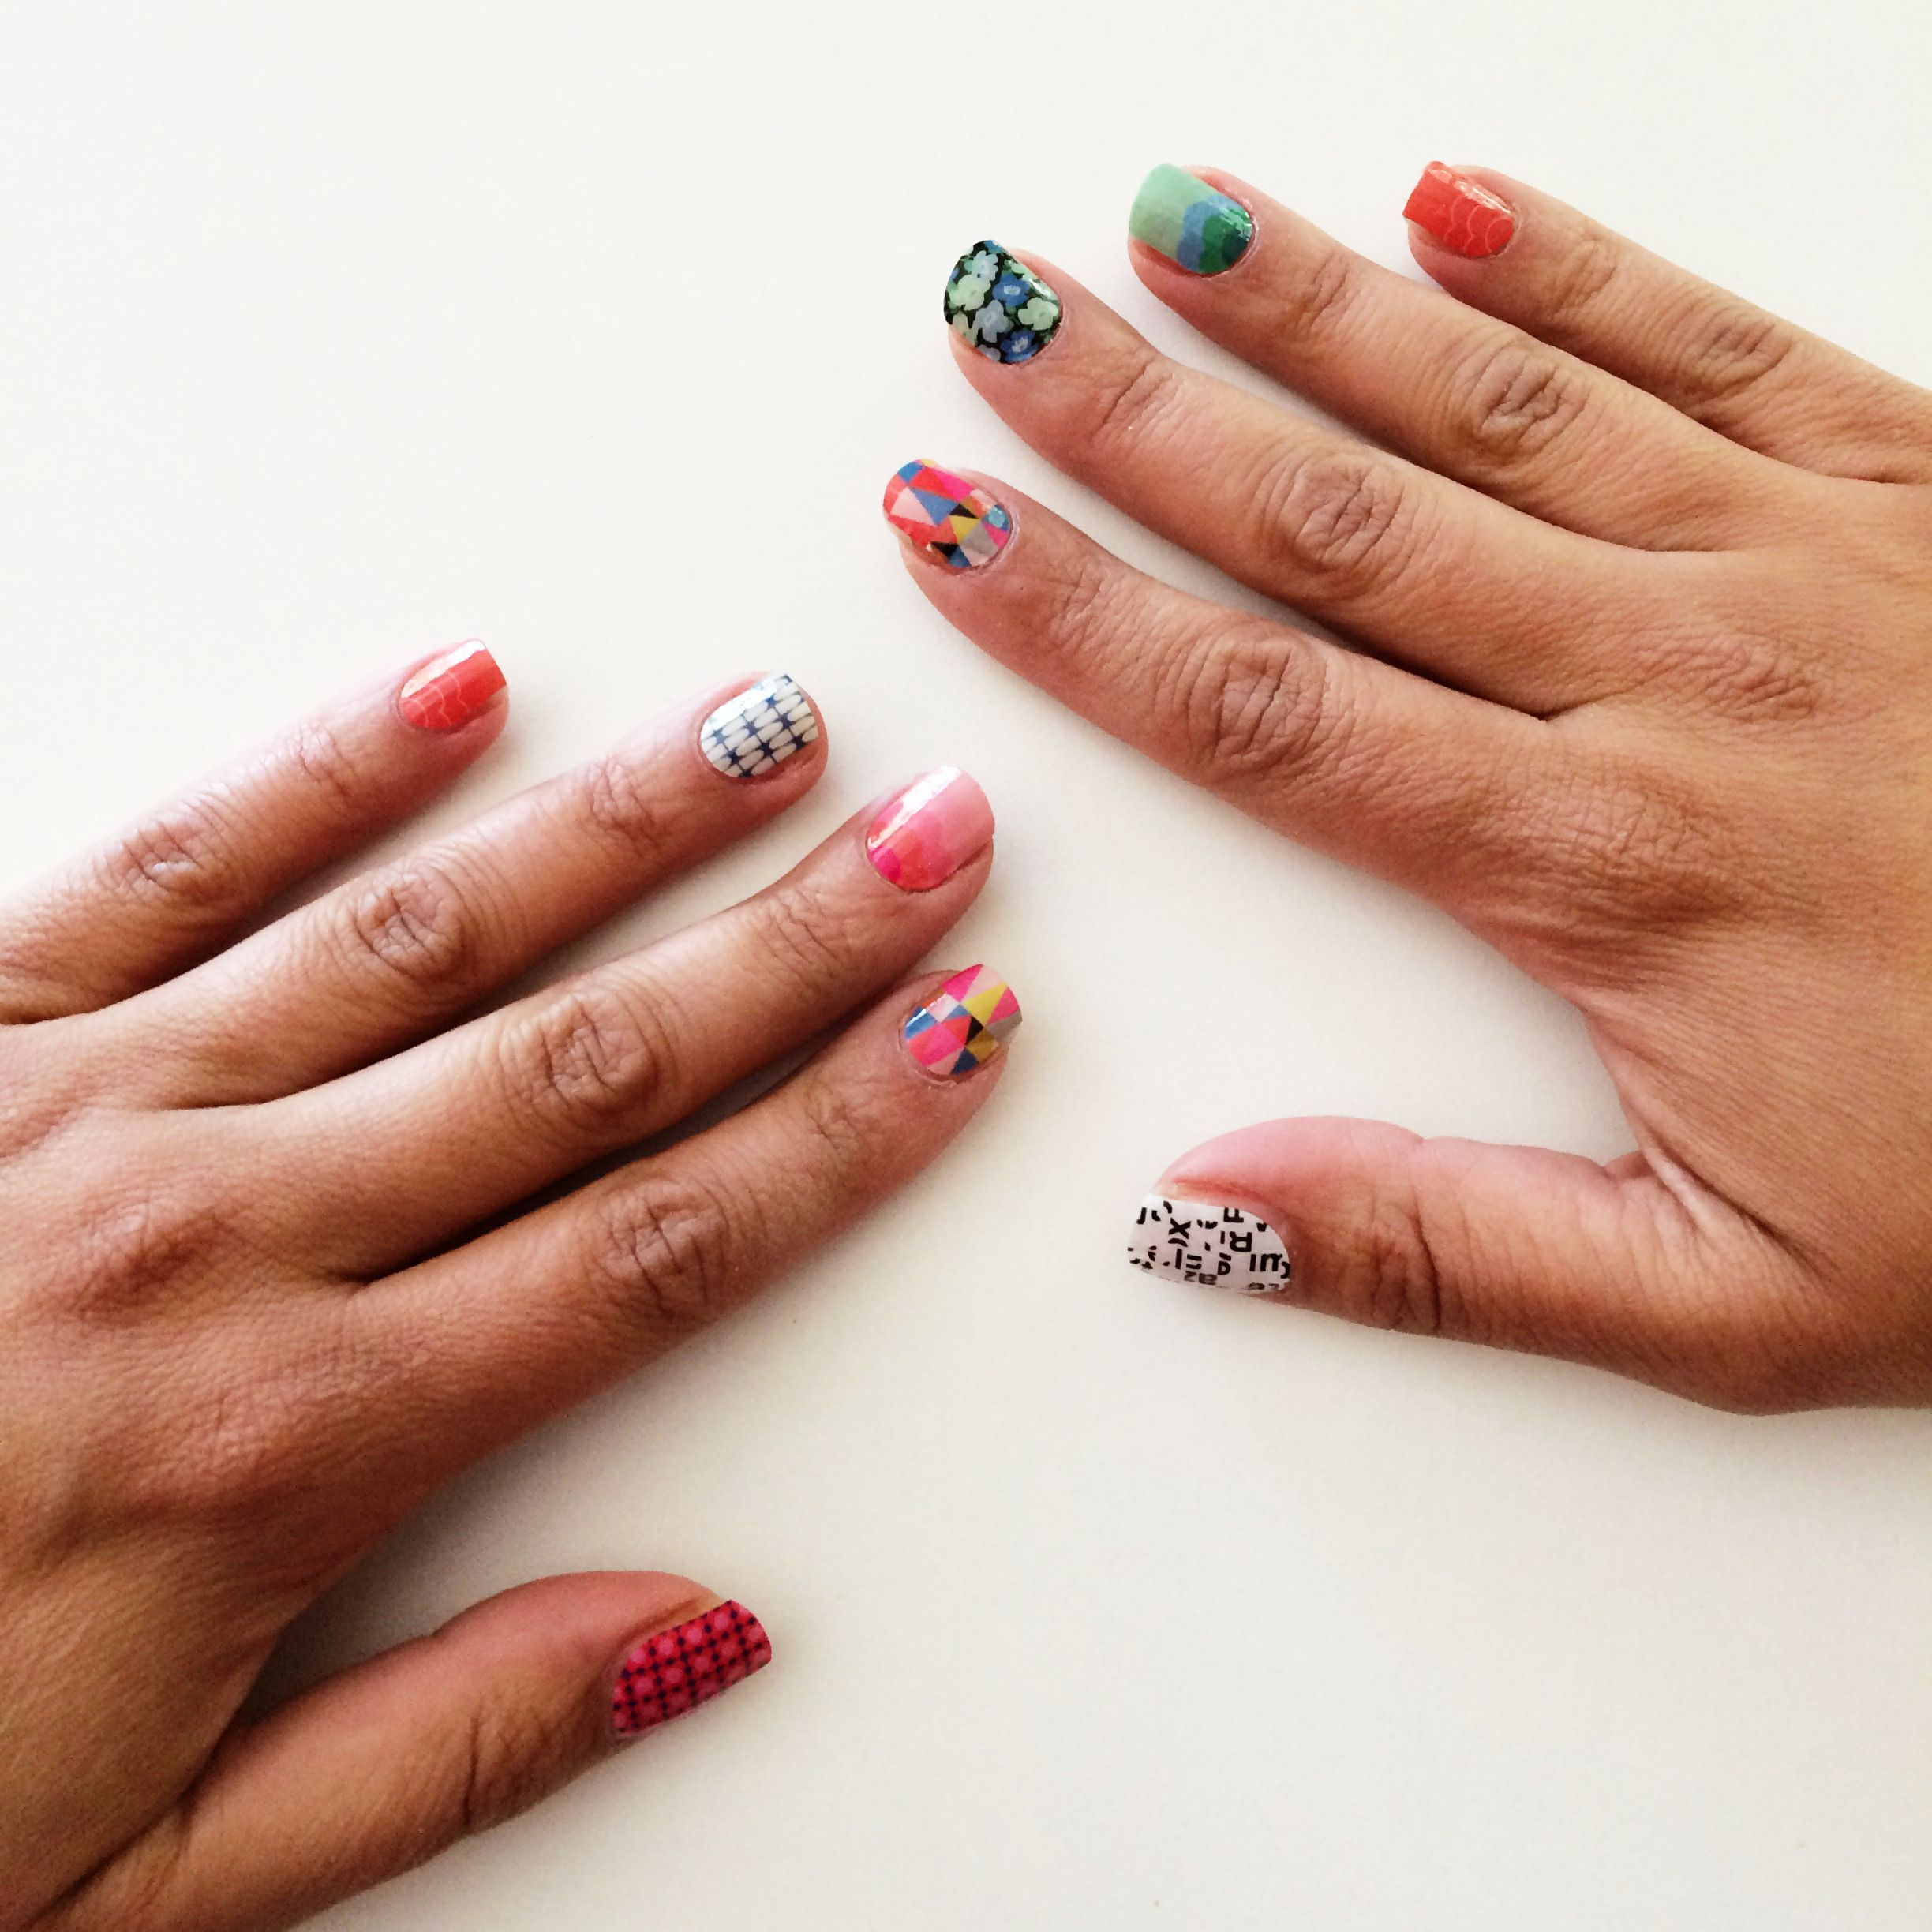 Nail Wrap Designs By Jessica Jones With Jamberry Nail Art Studio